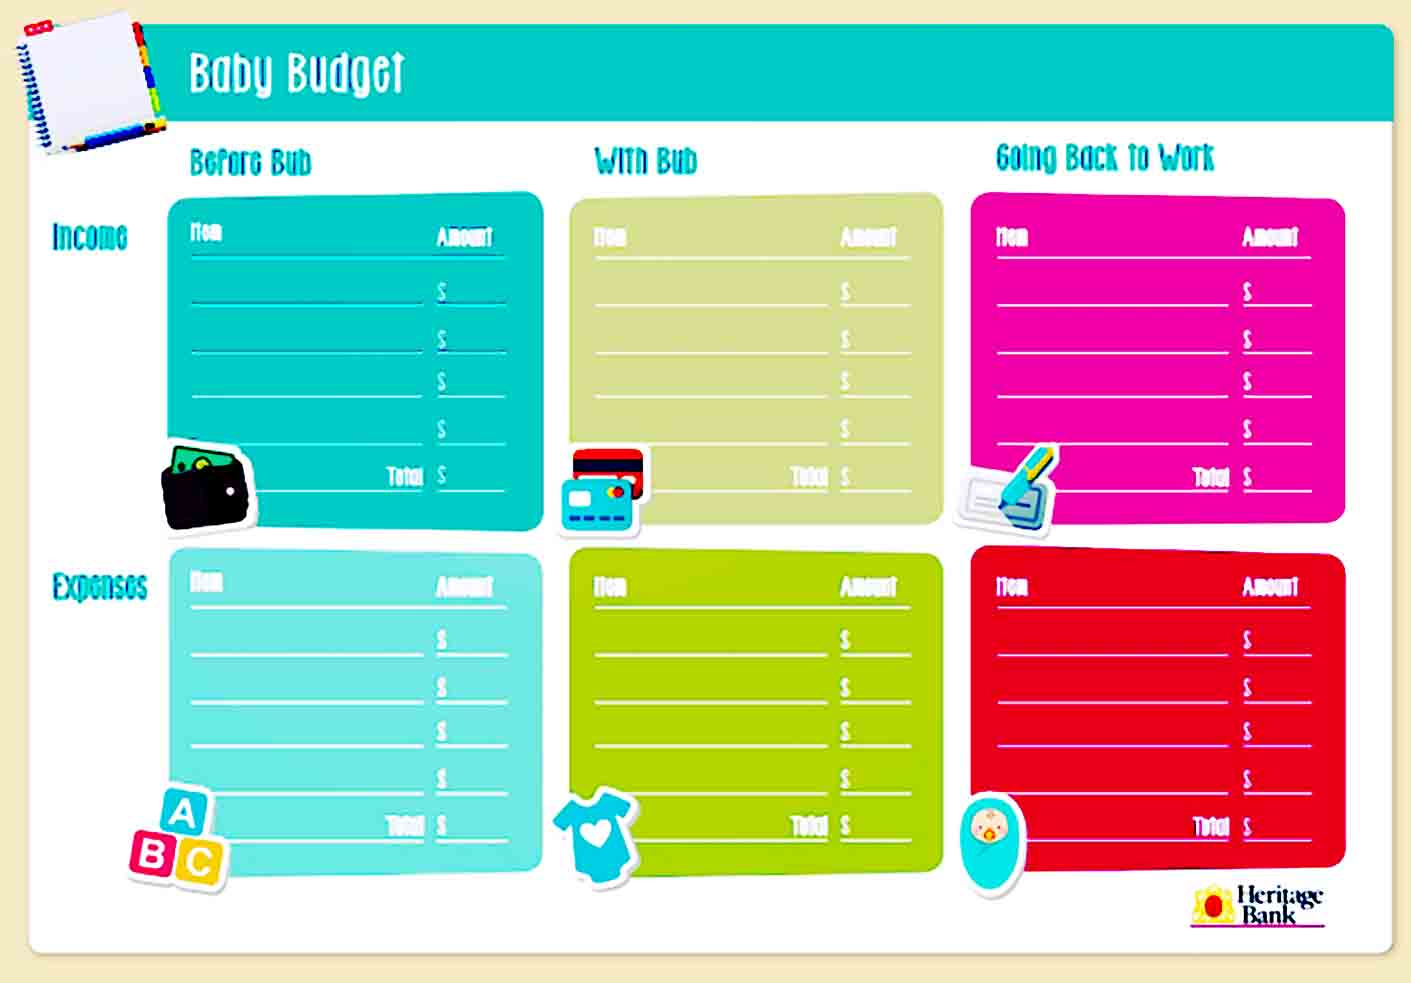 Basic Baby Budget Template